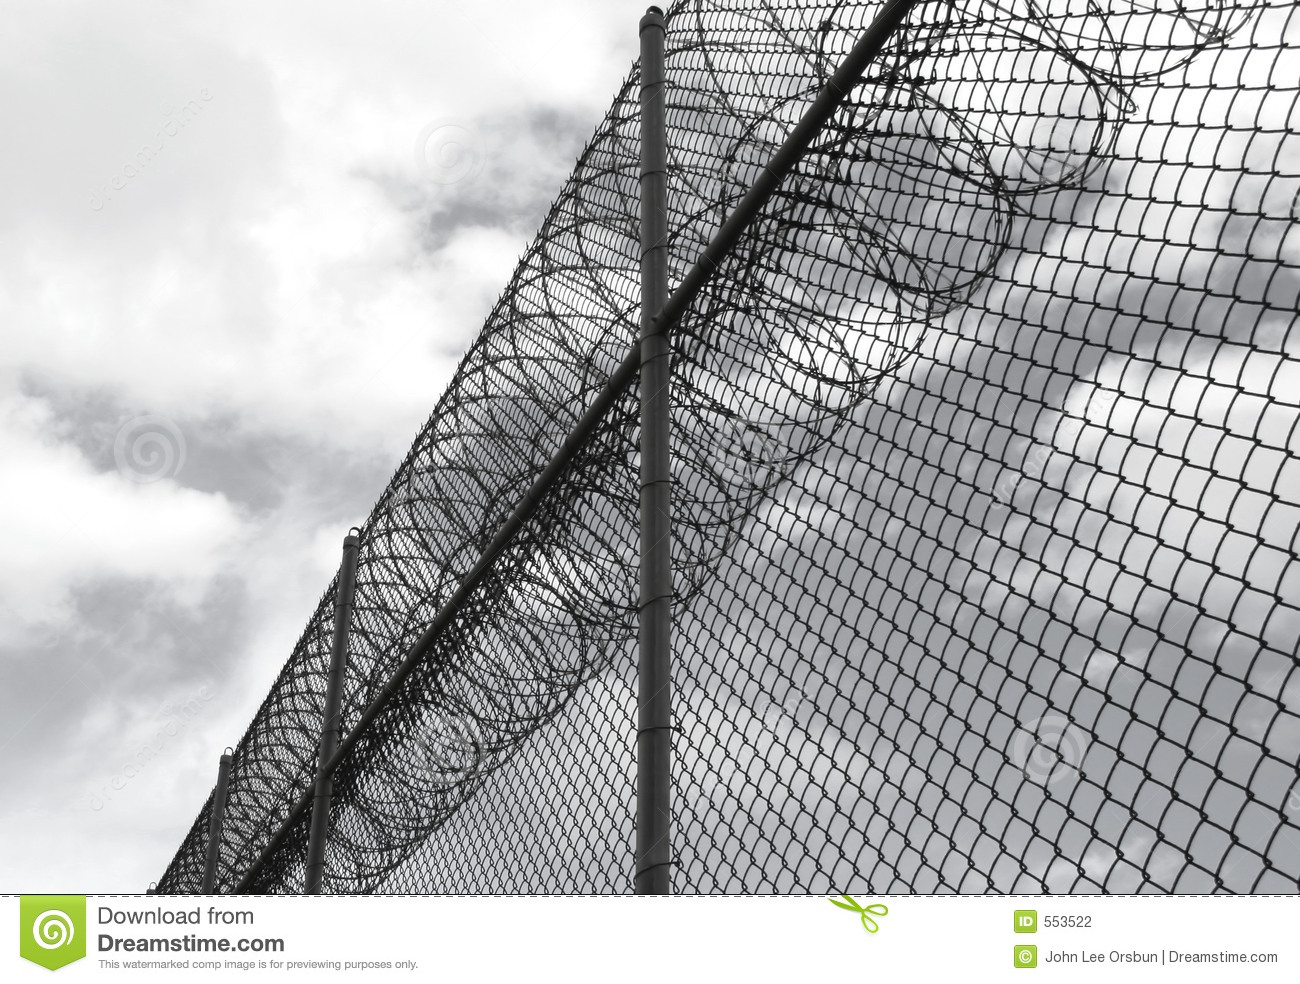 Security fence with barbed wire stock photography image